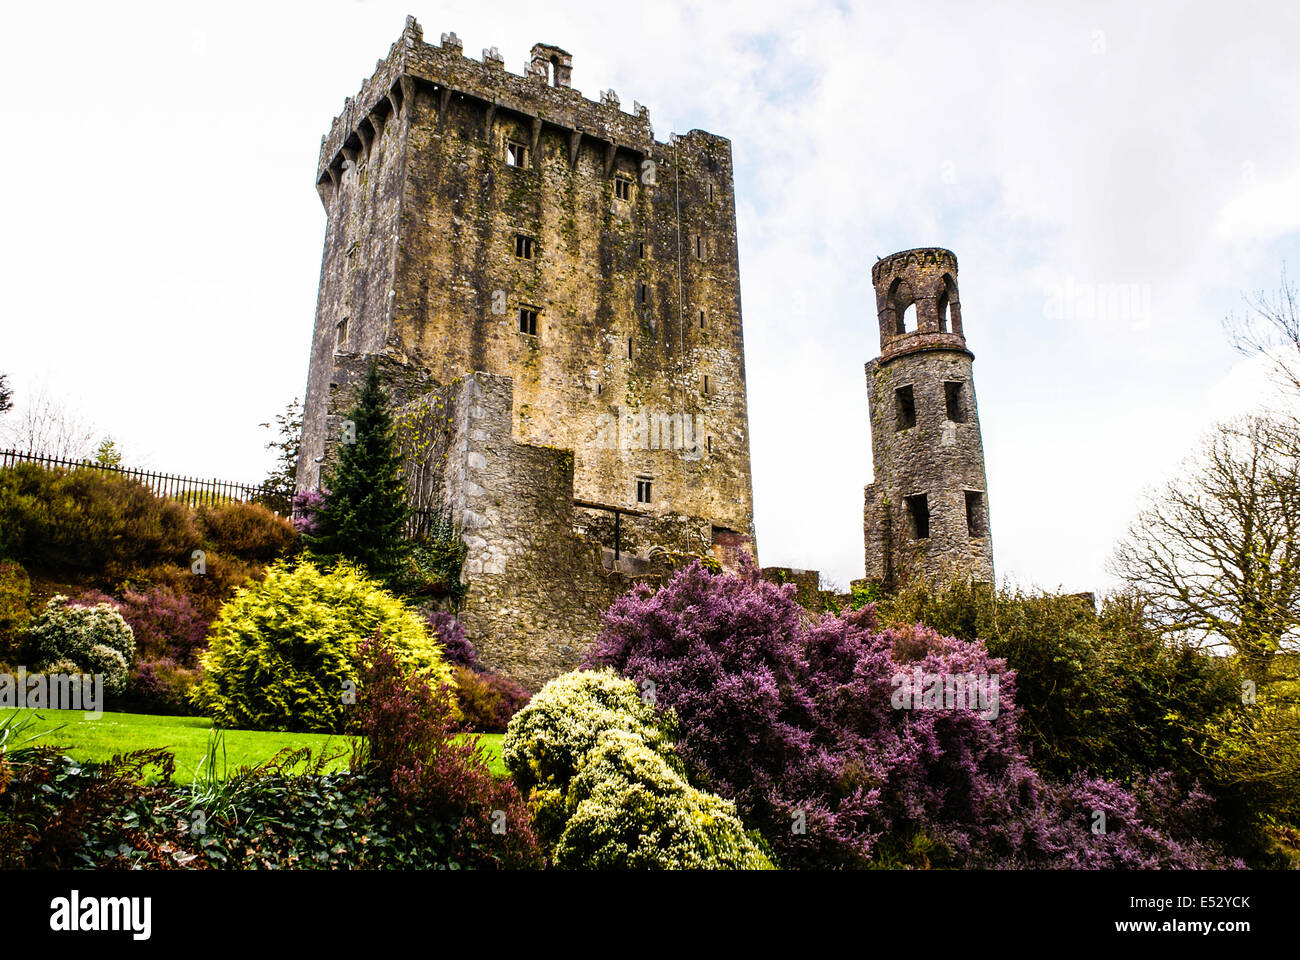 Irish castle of Blarney , famous for the stone of eloquence. Ireland Stock Photo